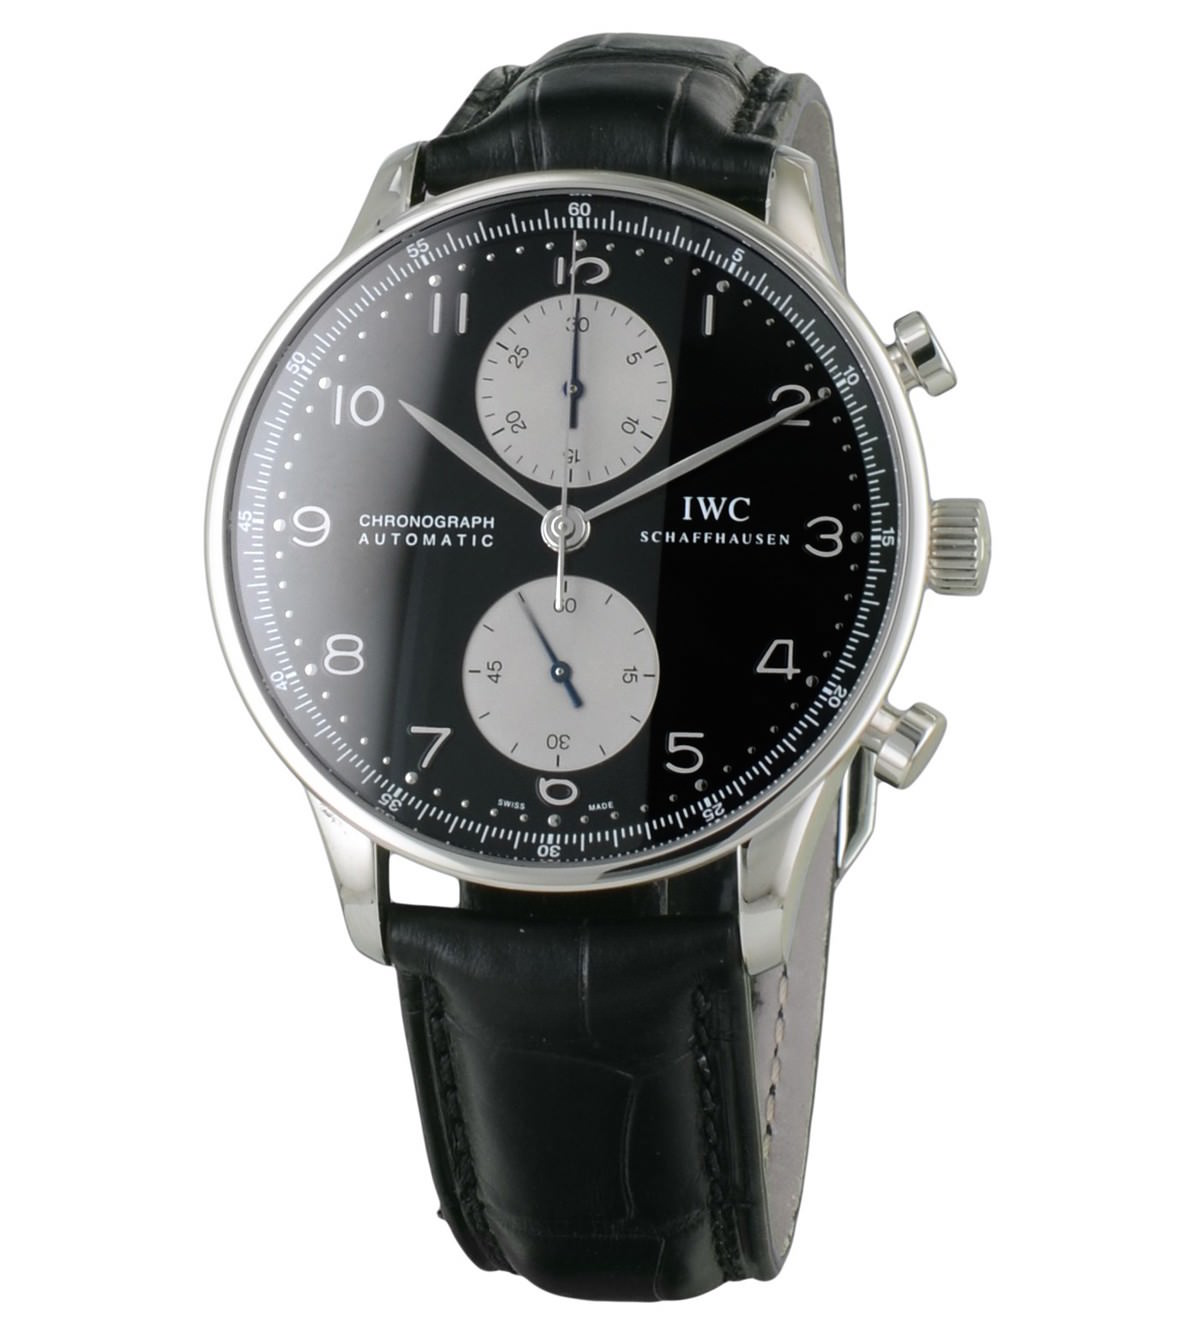 iwc portugaise anthony zimmer d'occasion